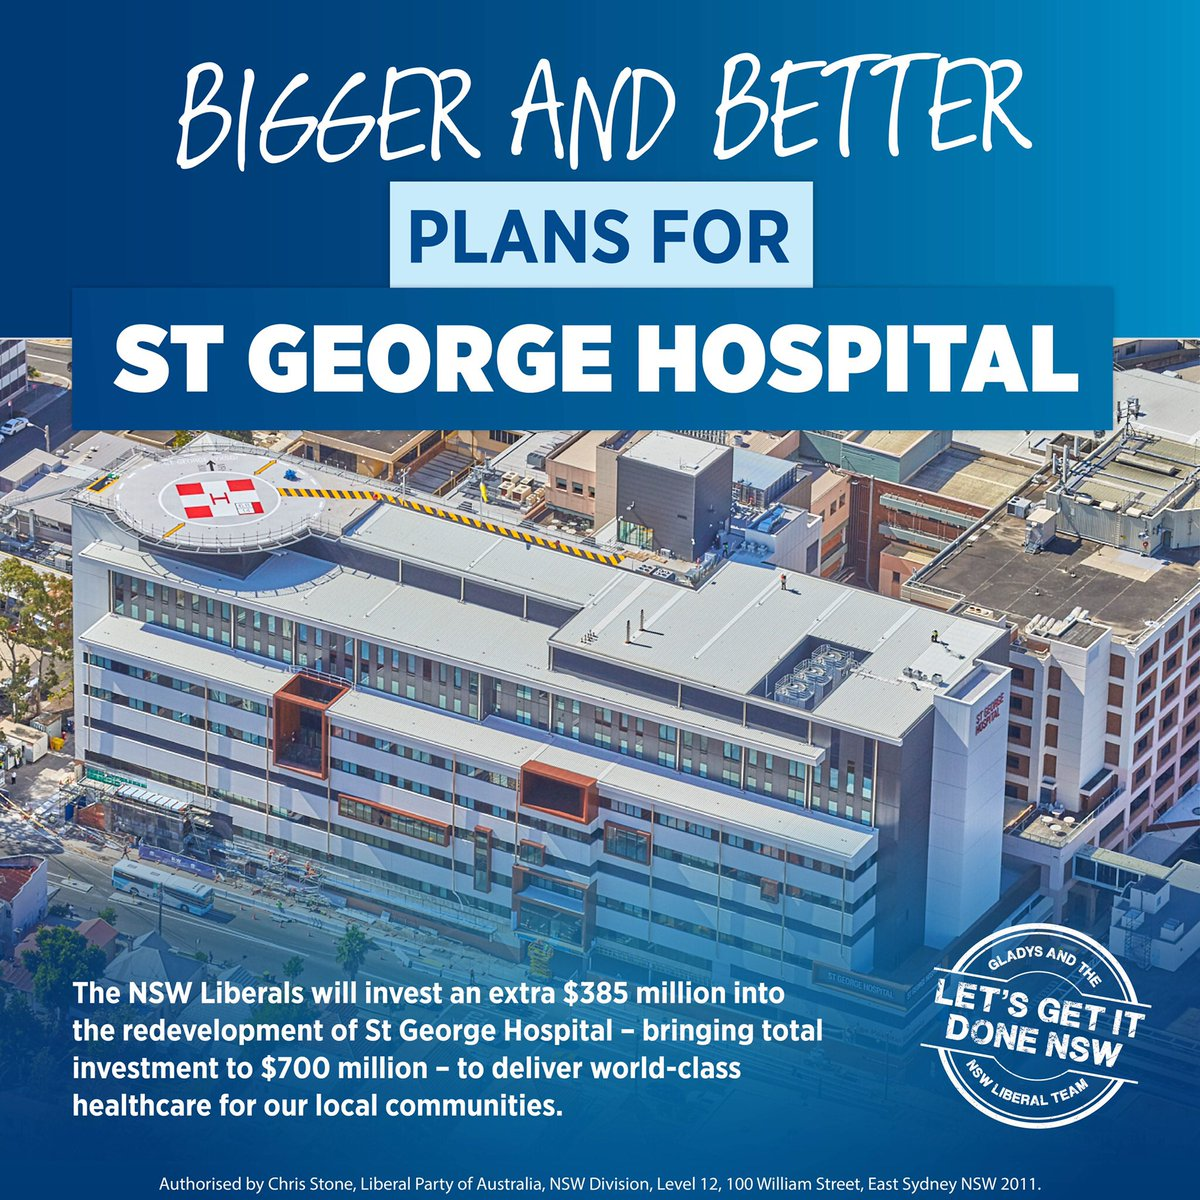 The NSW Liberals will invest an extra $385 million into the redevelopment of St George Hospital – bringing total investment to $700 million – to deliver world-class healthcare for our local communities. #nswpol #LetsGetItDoneNSW